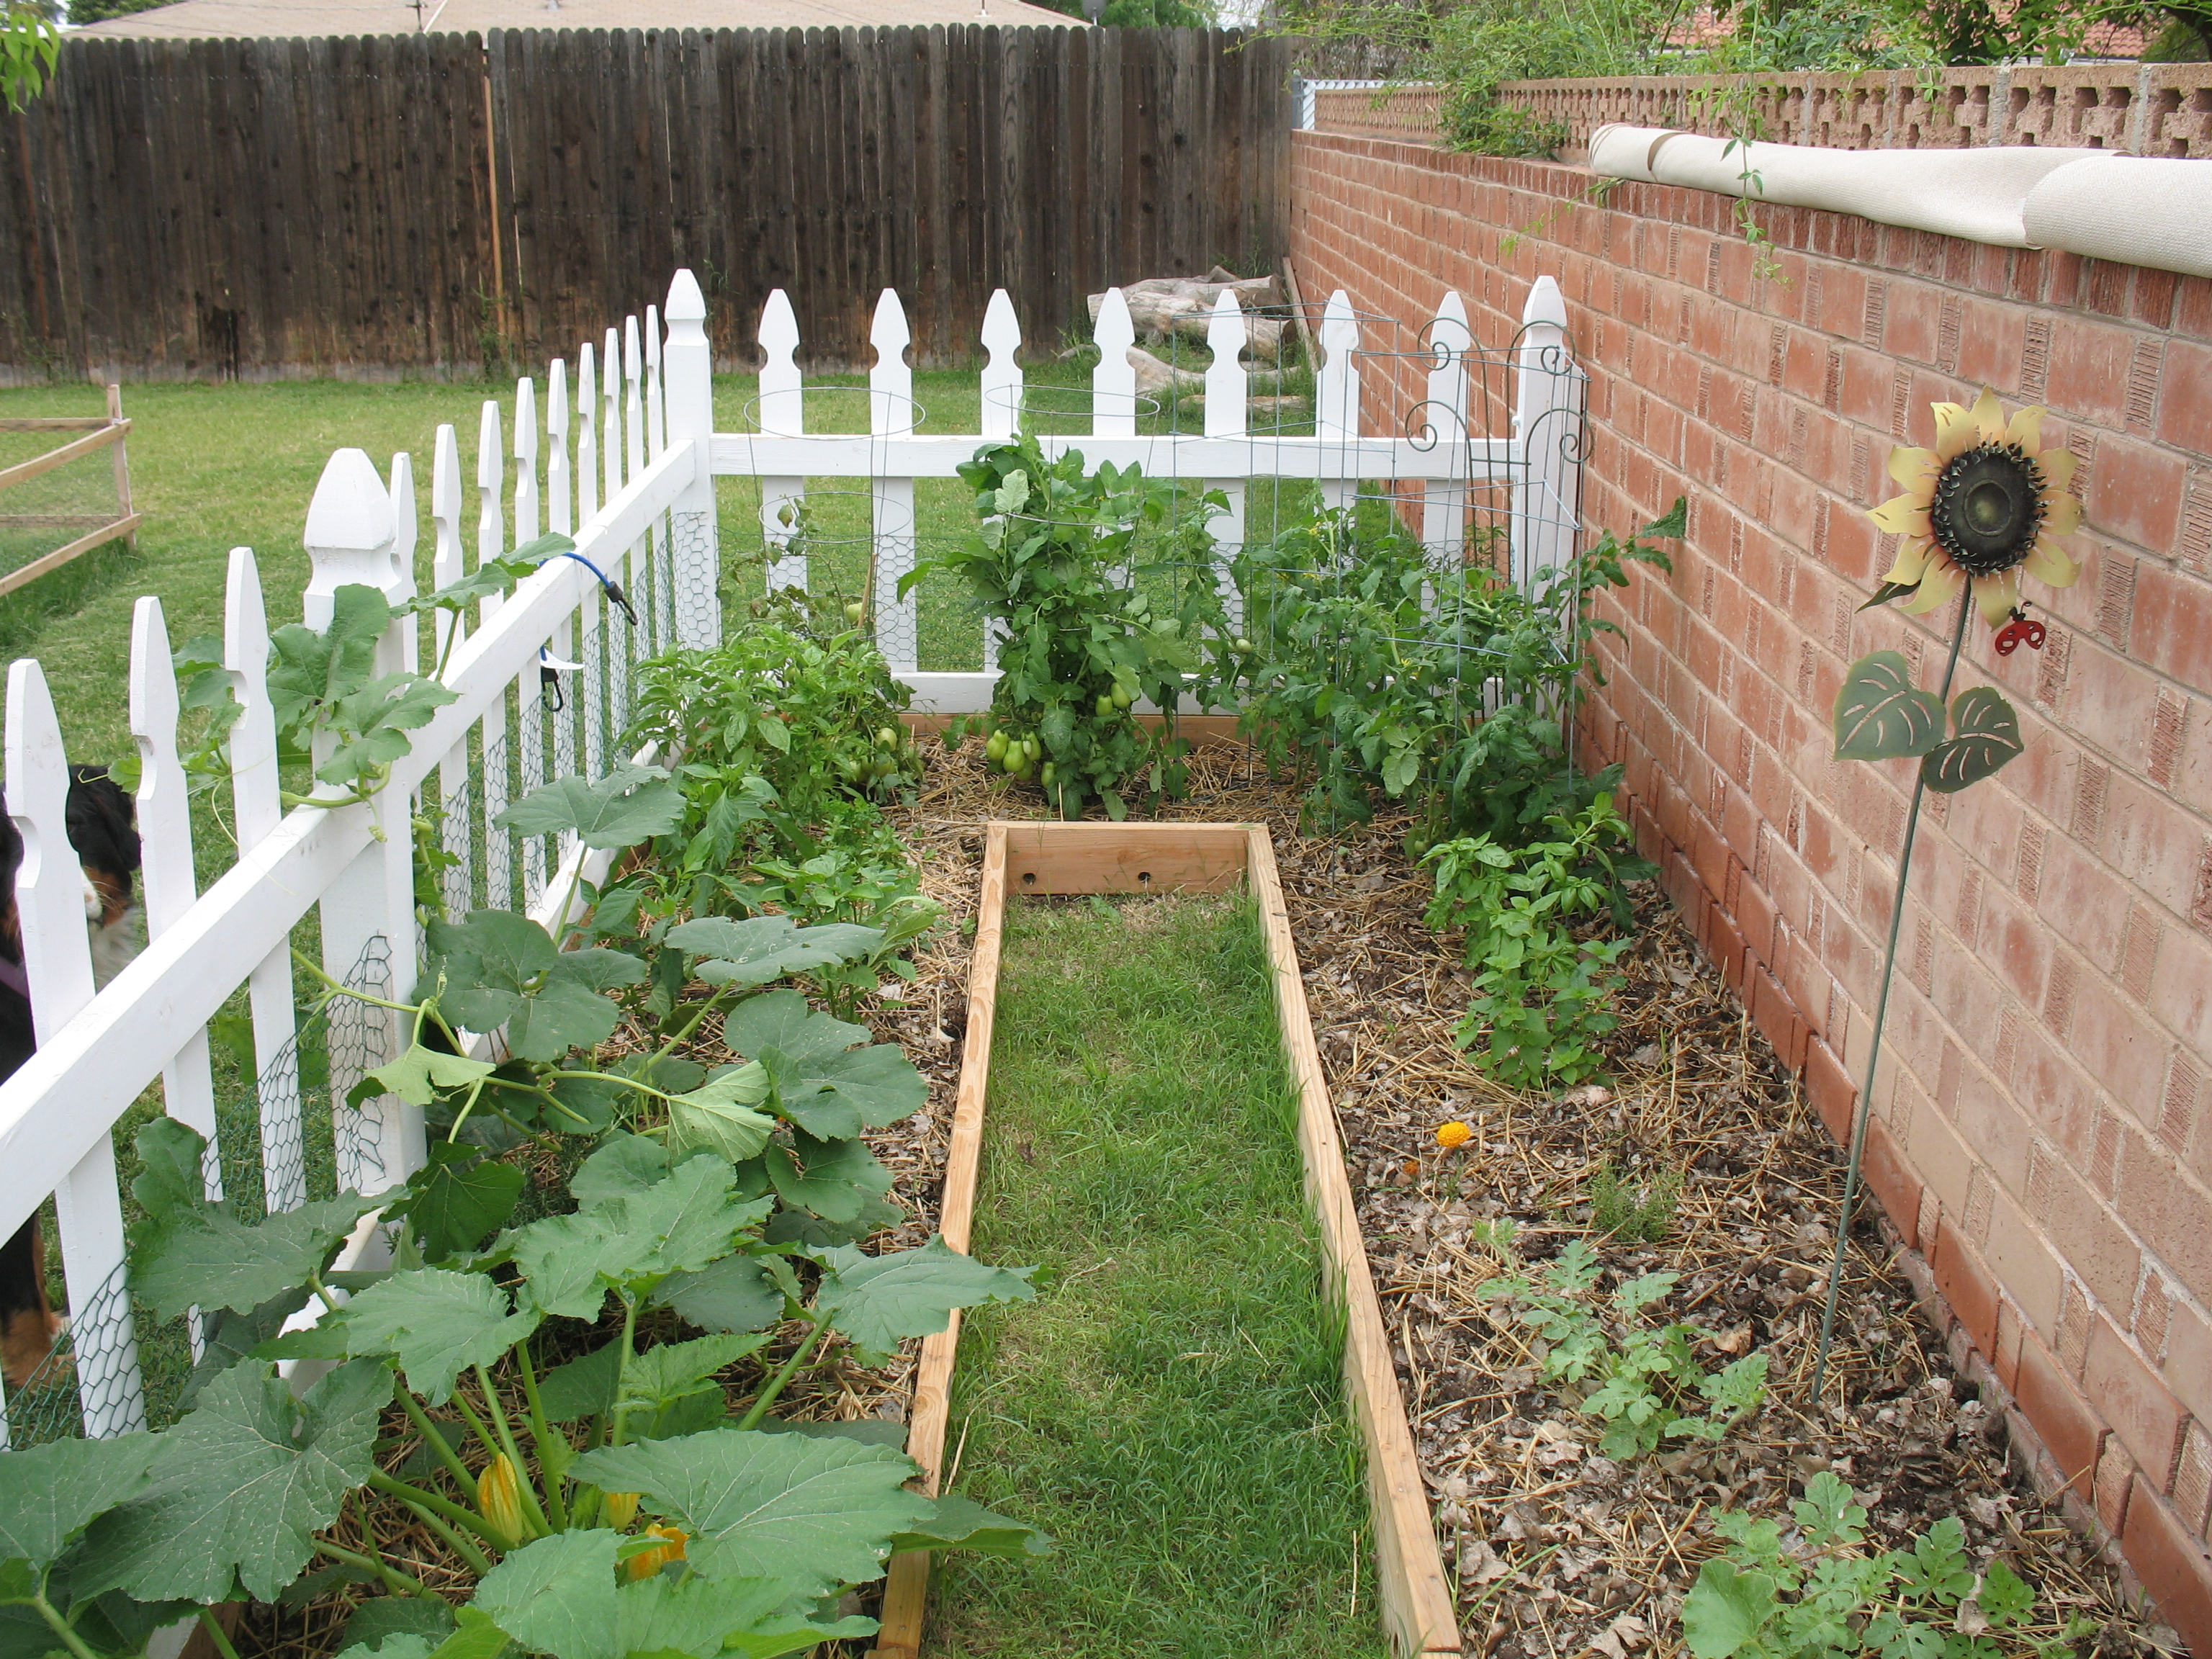 their food budget by starting backyard gardens fill your plate blog